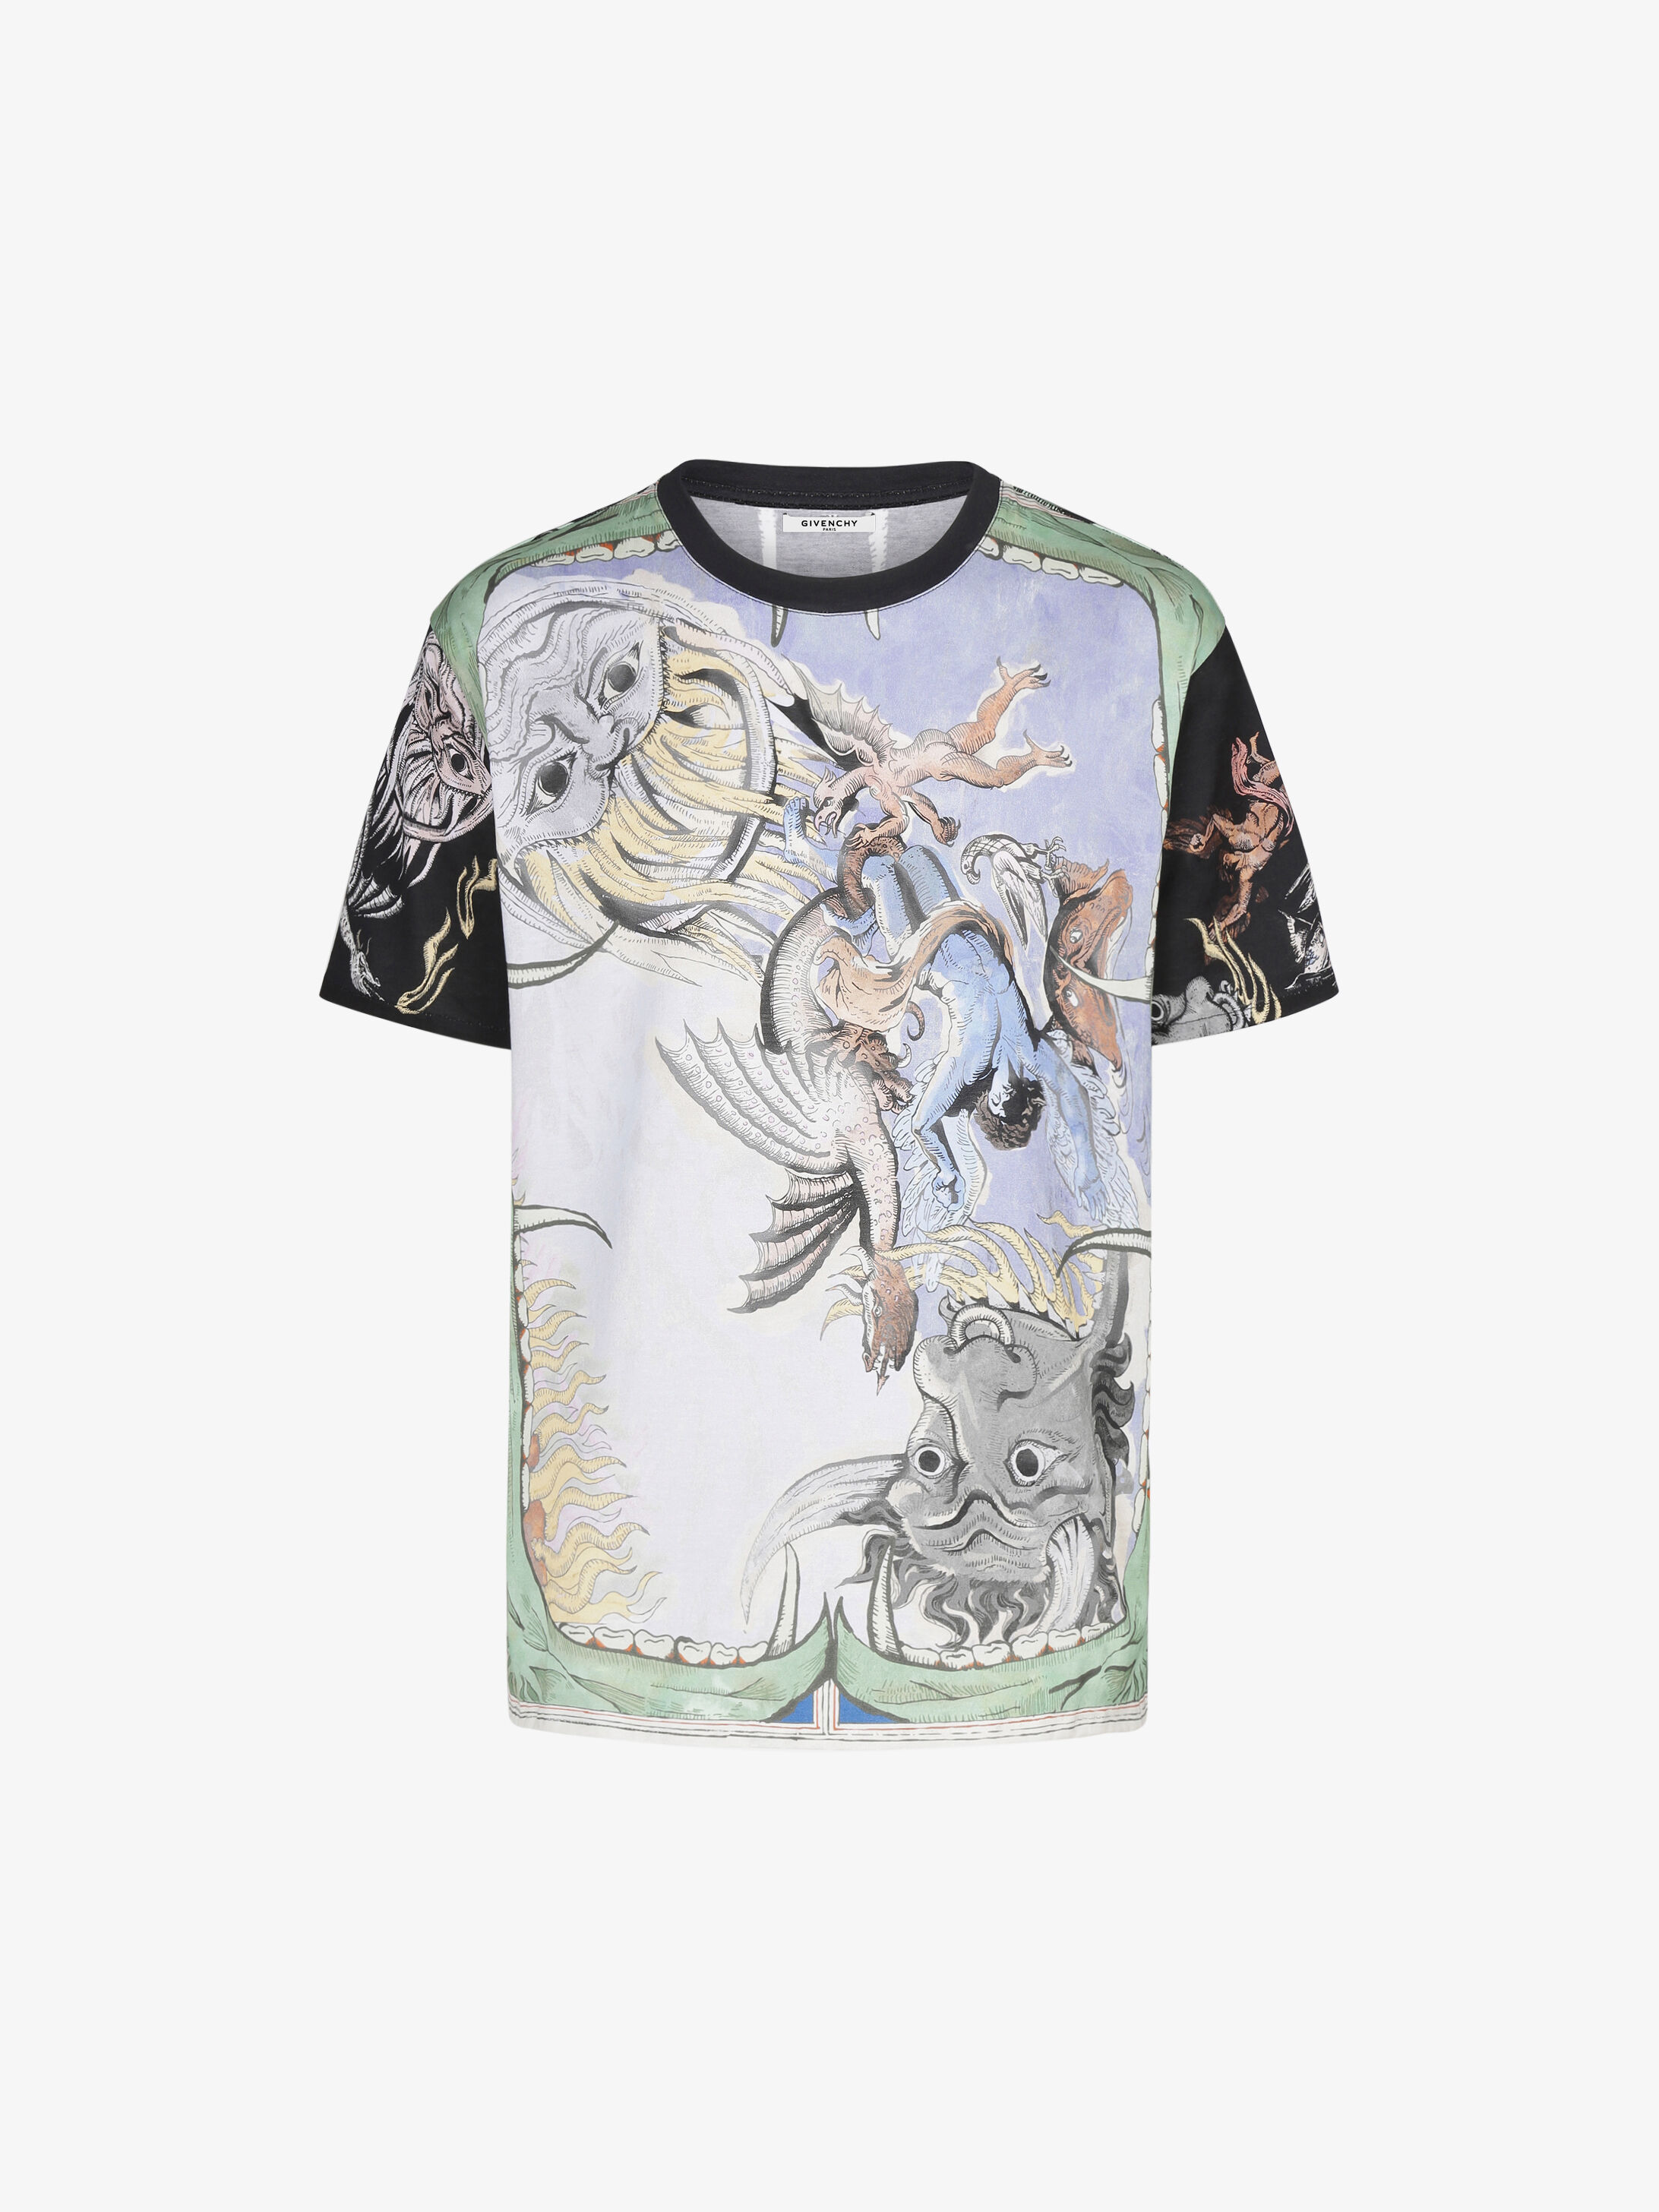 51787468740 Men's T-Shirts collection by Givenchy. | GIVENCHY Paris